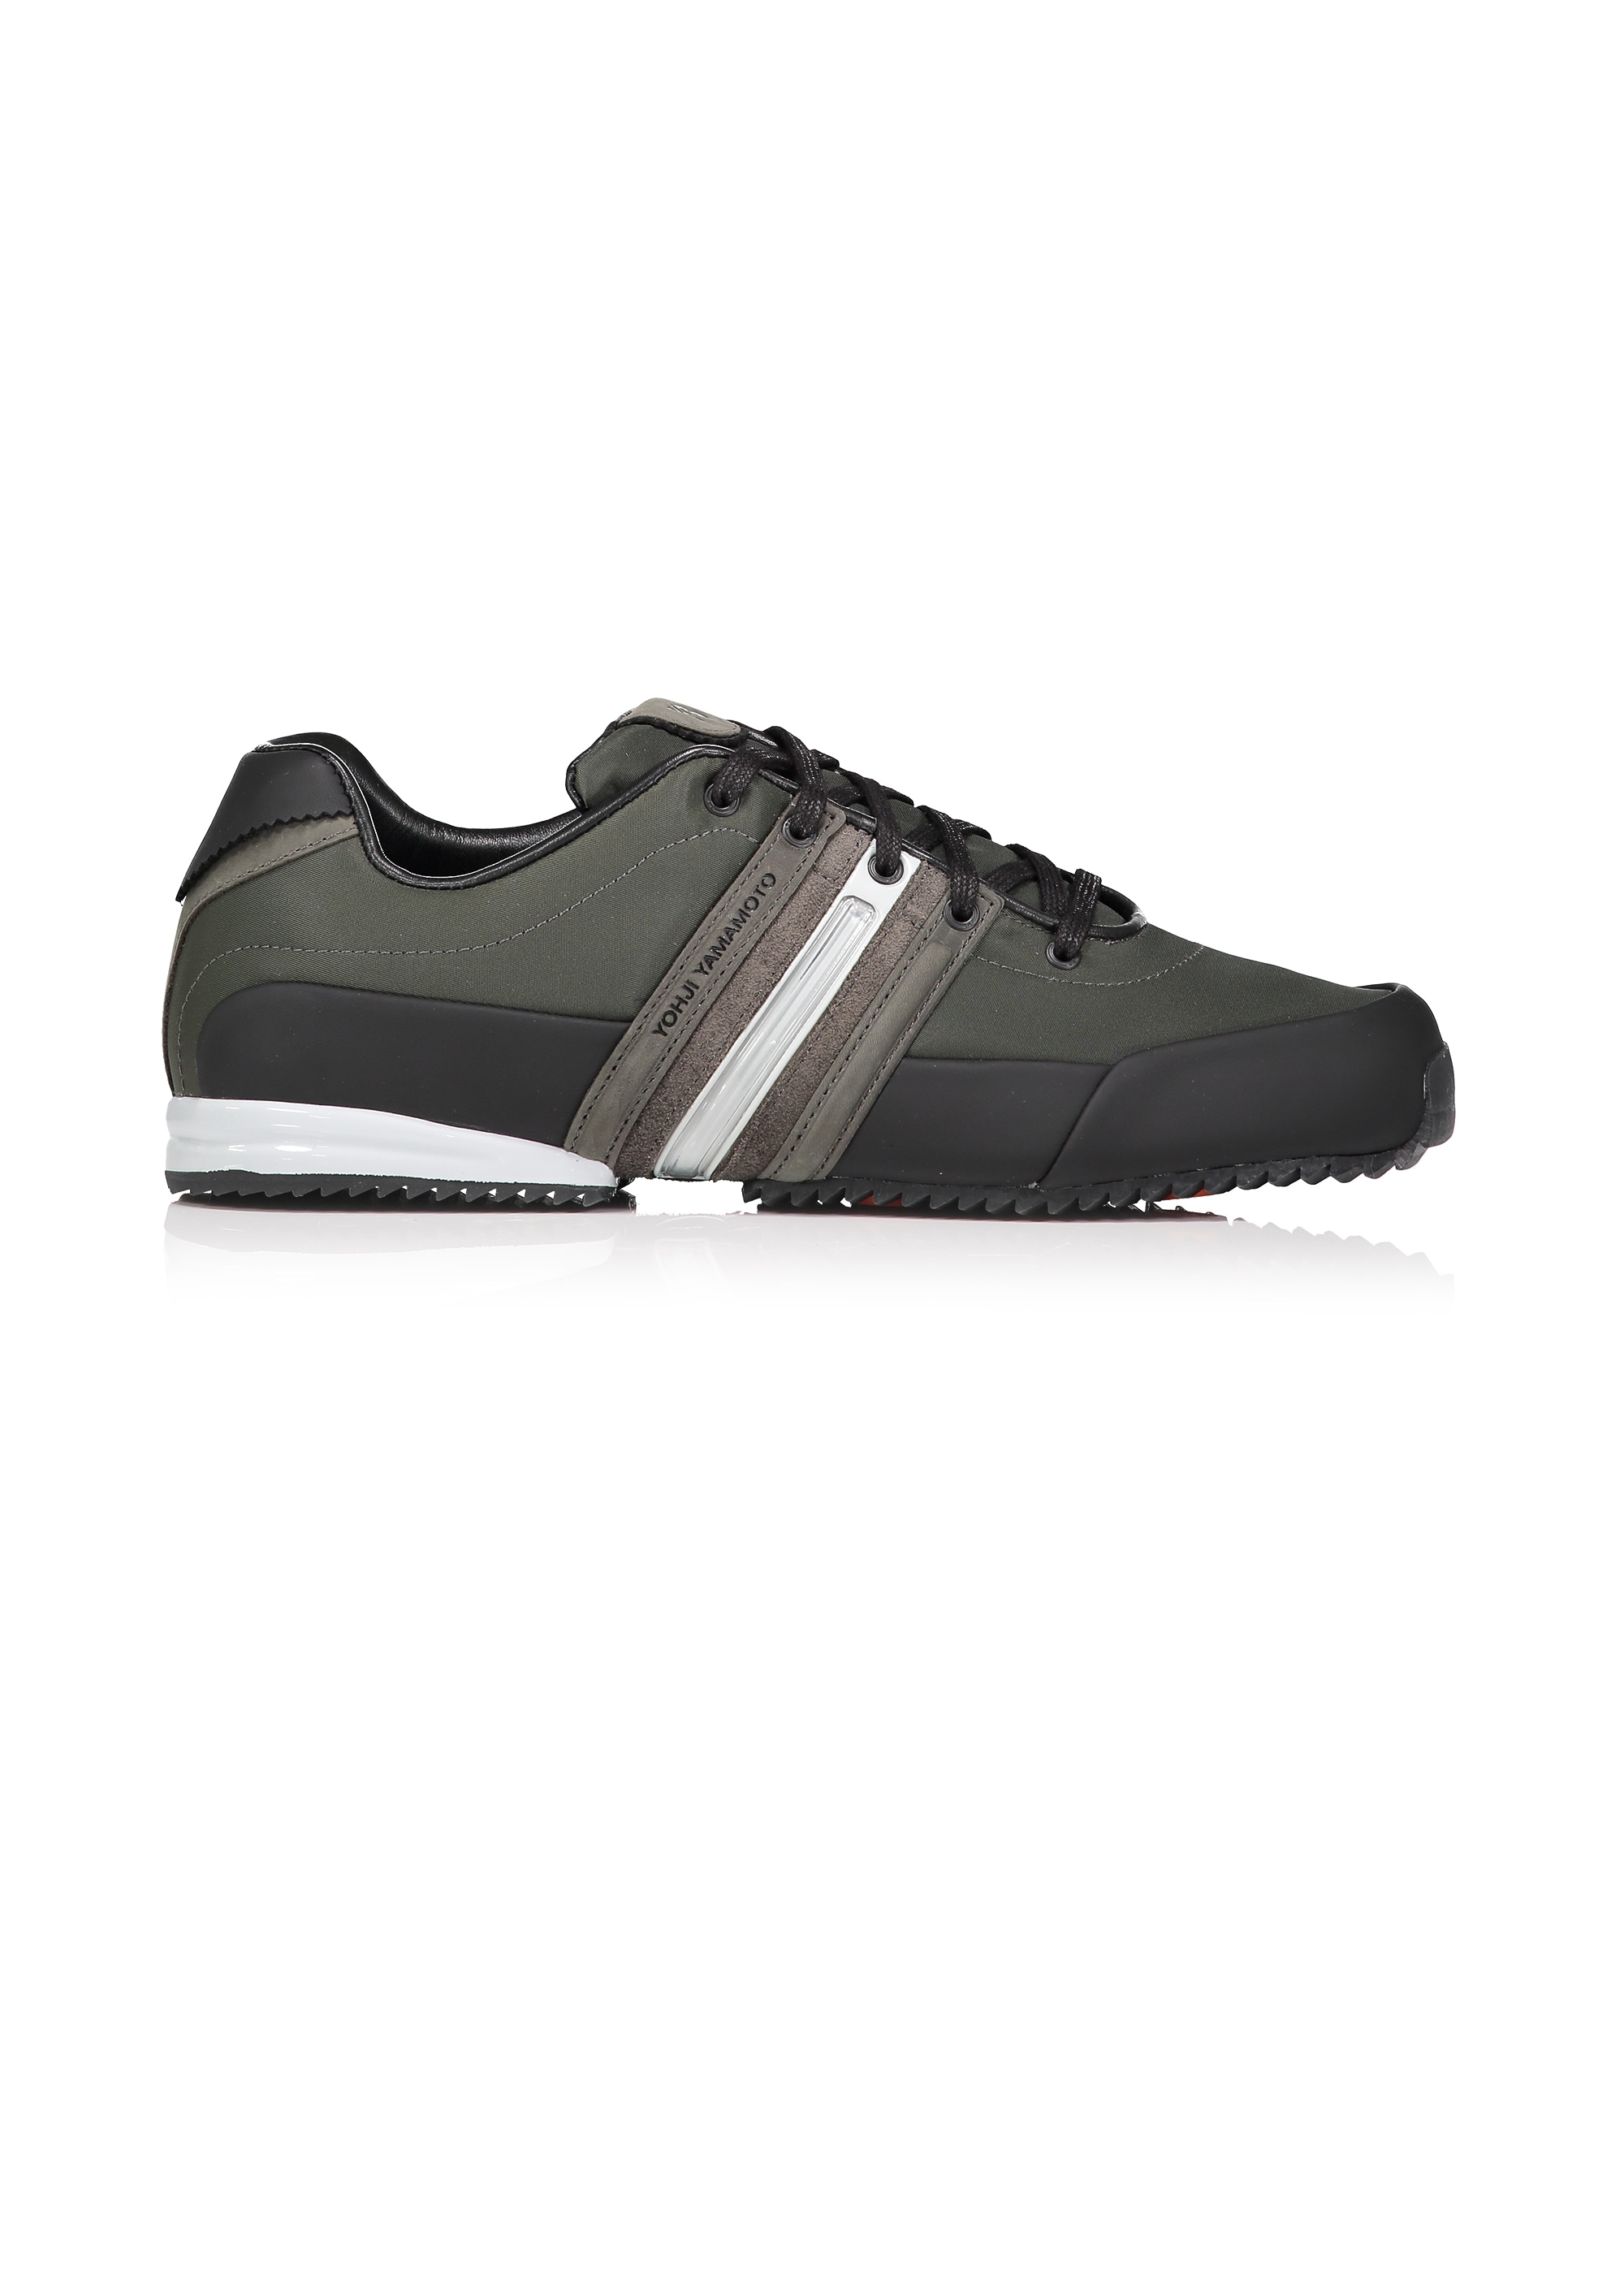 5b91d583a924 ... Y3   Adidas - Yohji Yamamoto Sprint Trainers - Black Olive. Tap image  to zoom. Sprint Trainers - Black Olive · Sprint Trainers - Black Olive